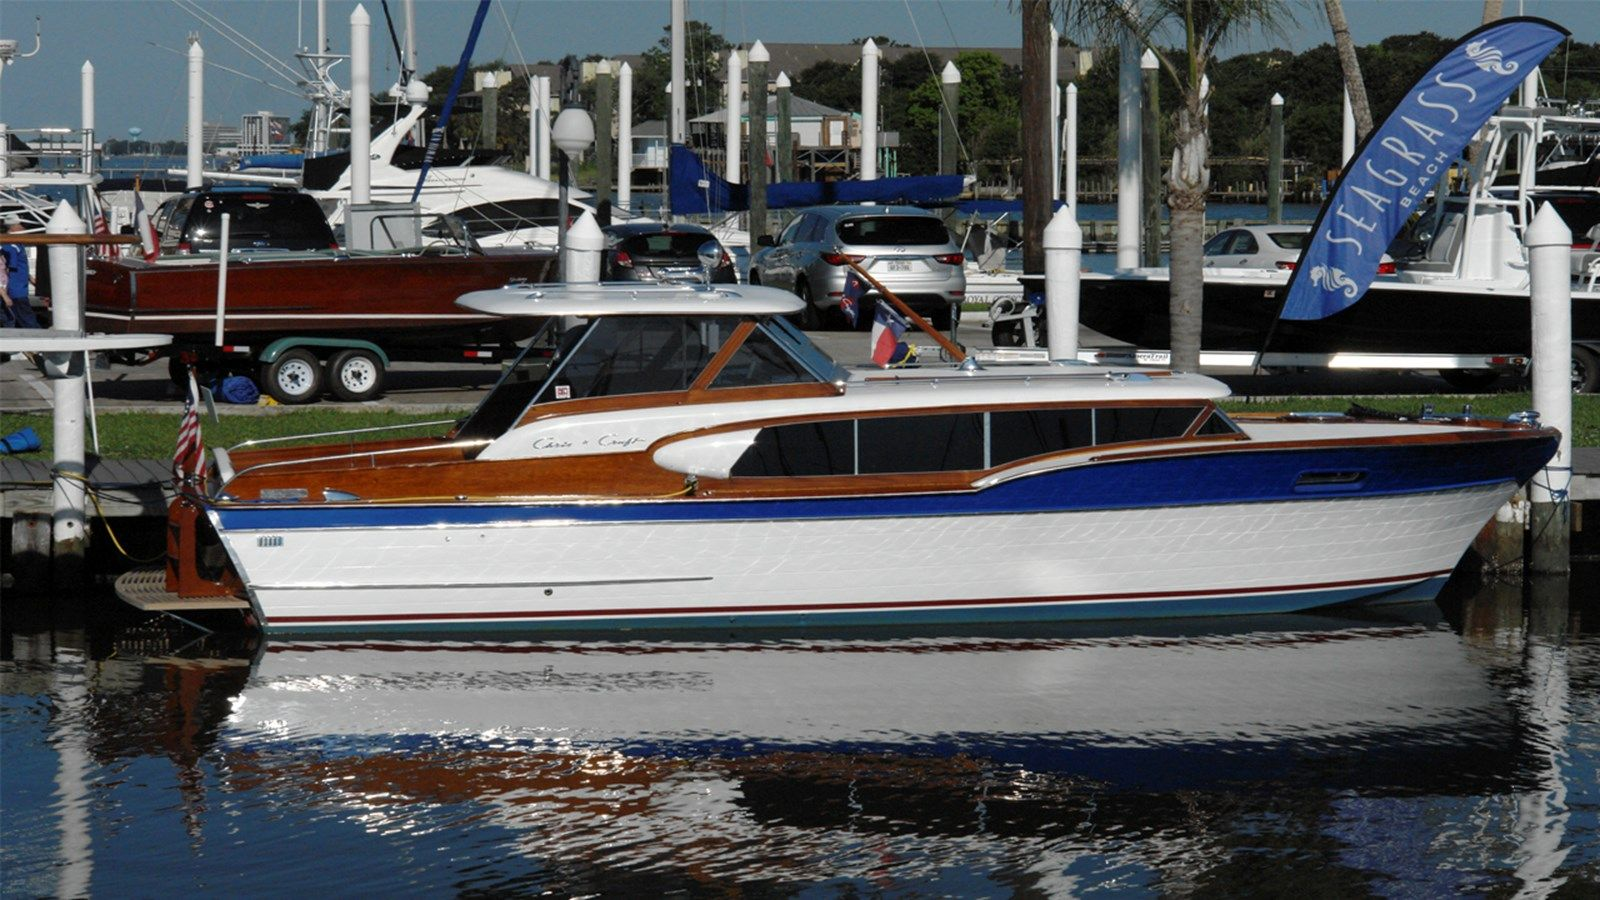 1959 Chris Craft Cavalier Vintage Boats Classic Boats Chris Craft Boats